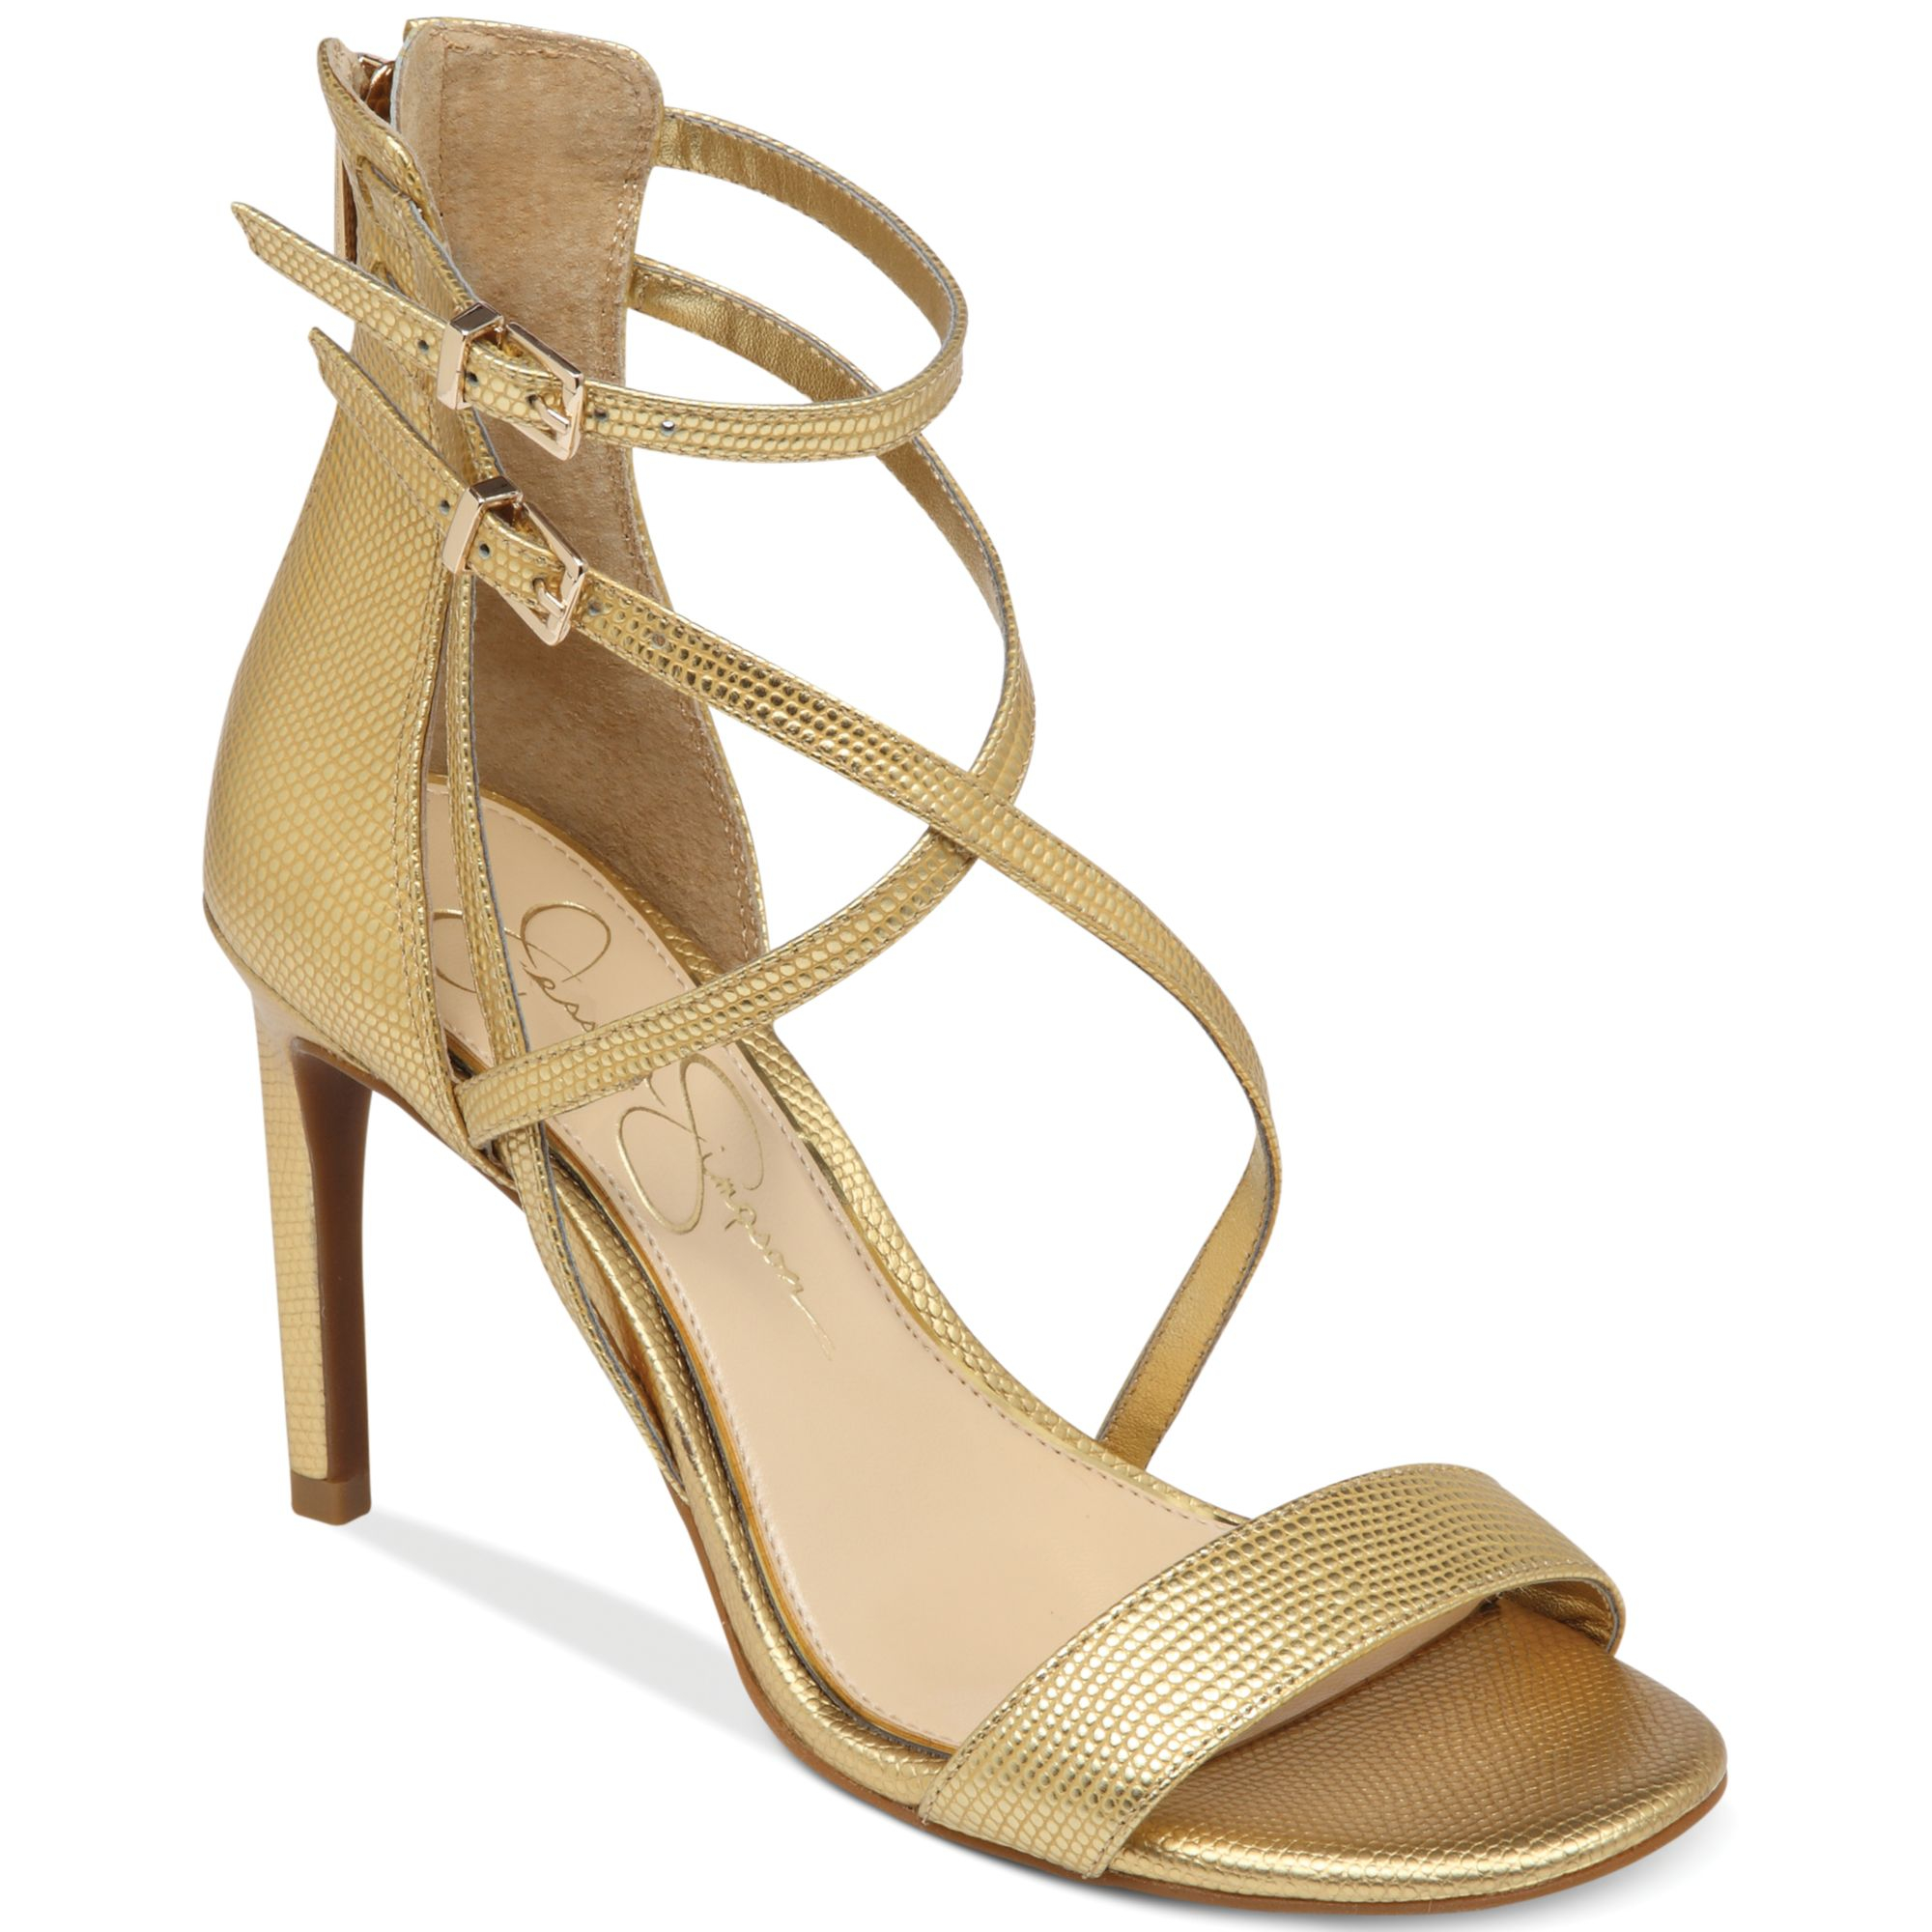 Jessica Simpson Myelle Strappy Sandals In Gold